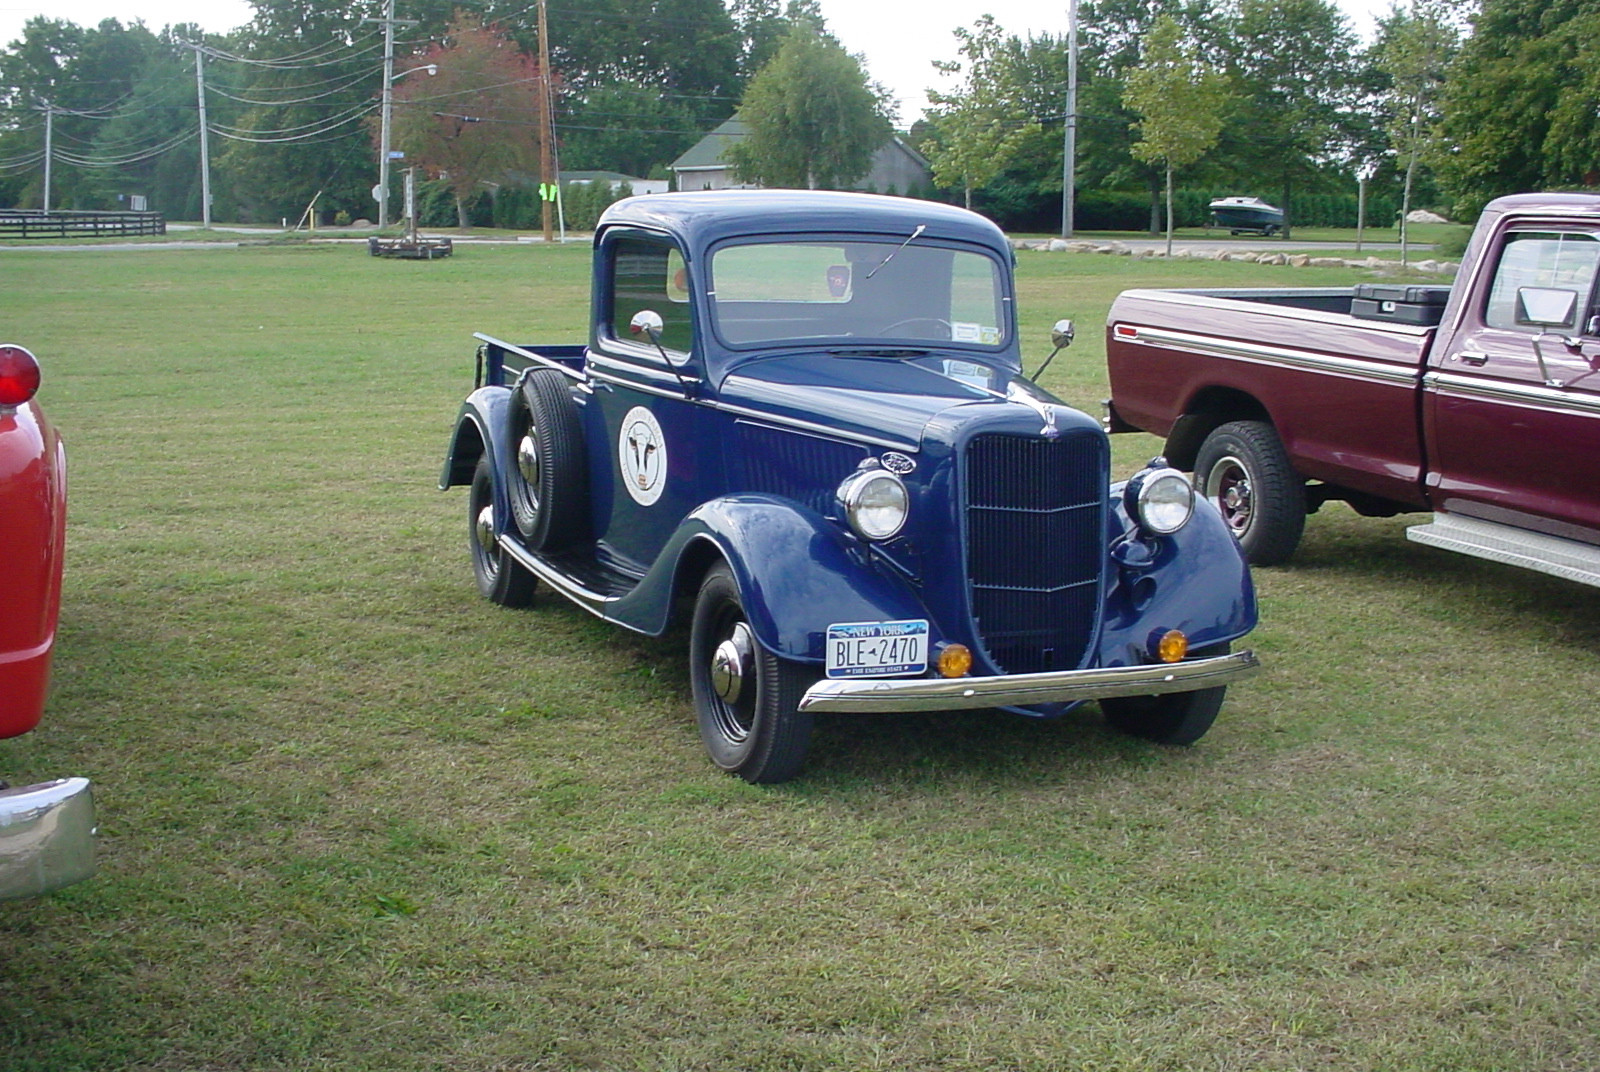 Floyd Chivvis' 1936 Ford pickup